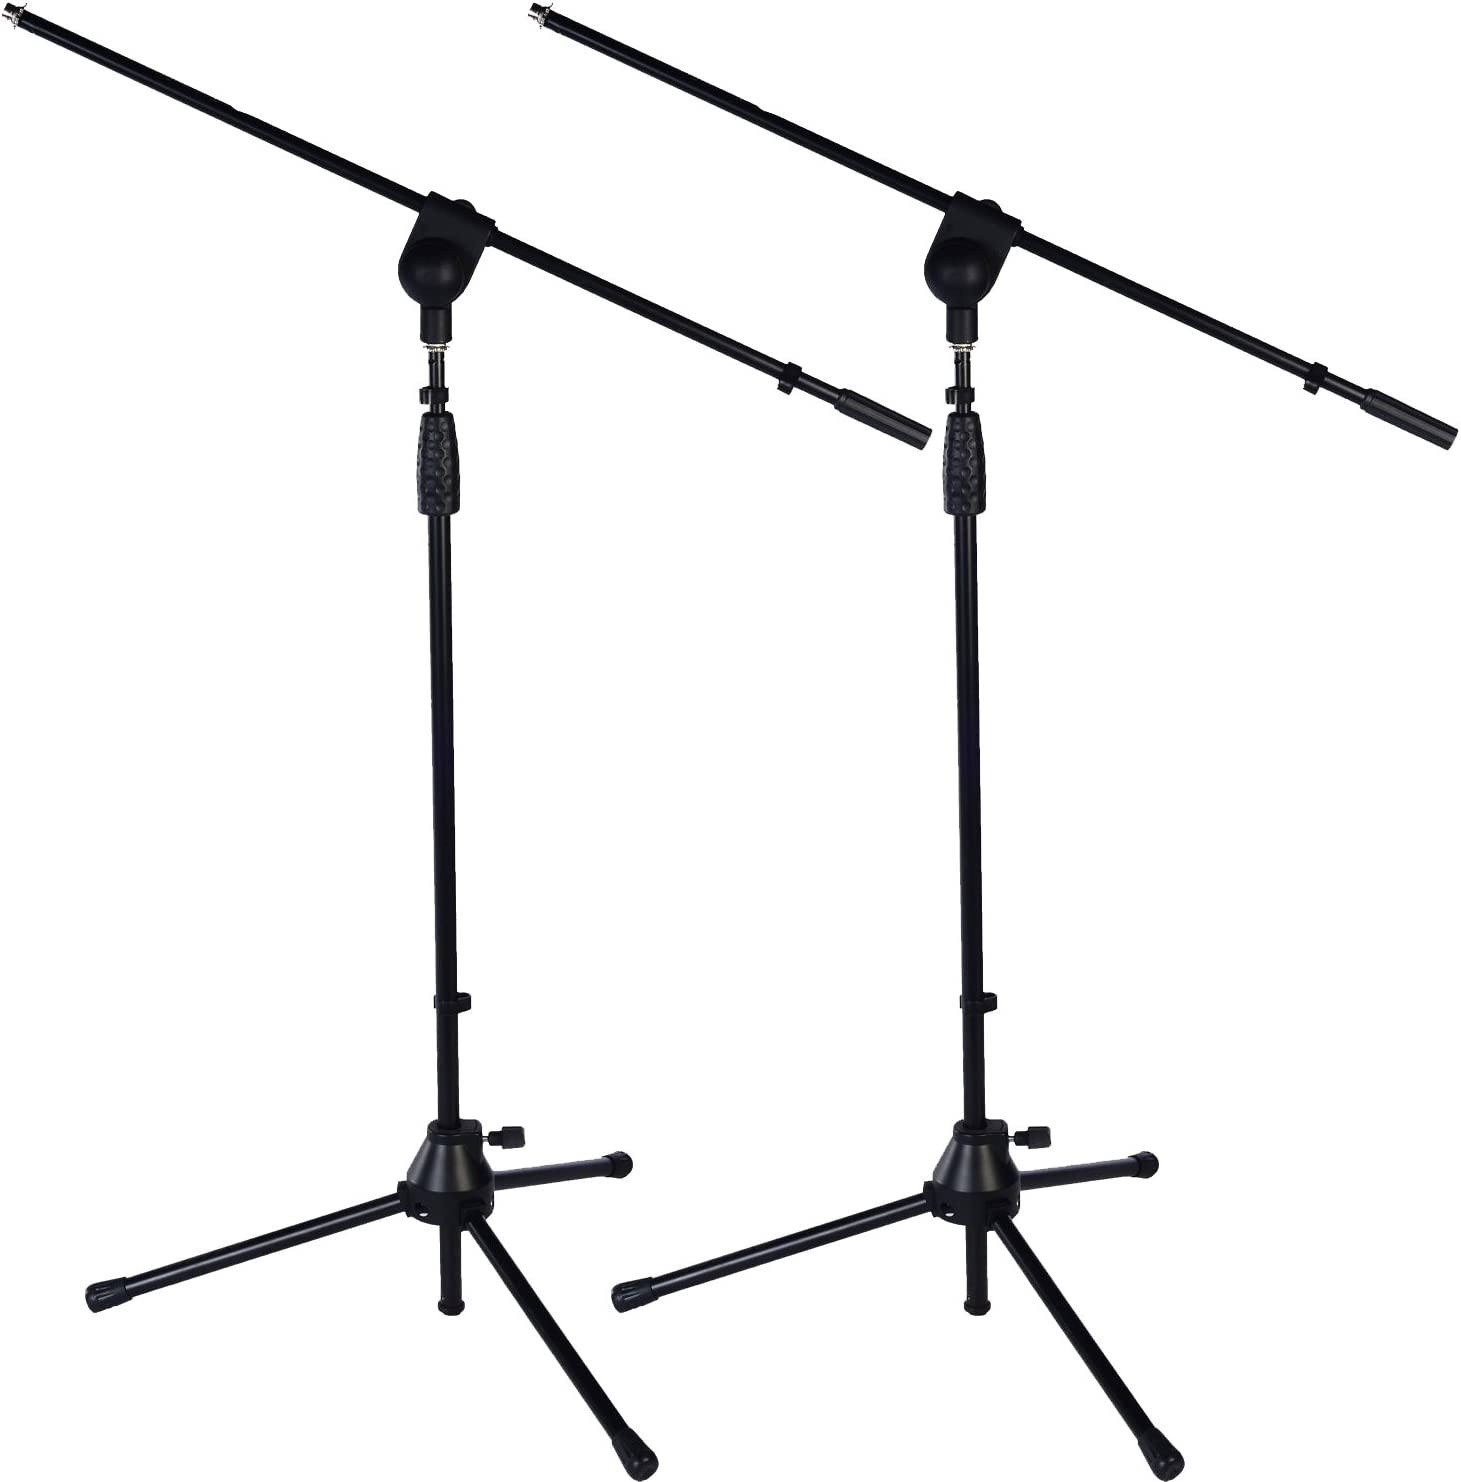 "2 Pack LyxPro Microphone Stand Boom Arm Tilting Rotating Floor Podium Stage or Studio Strong Durable And Foldable Height 38.5""- 66"" Extends Arm to 29 3/8"" Comes With 3/8"" and 5/8"" mount Adapters TMS-1"